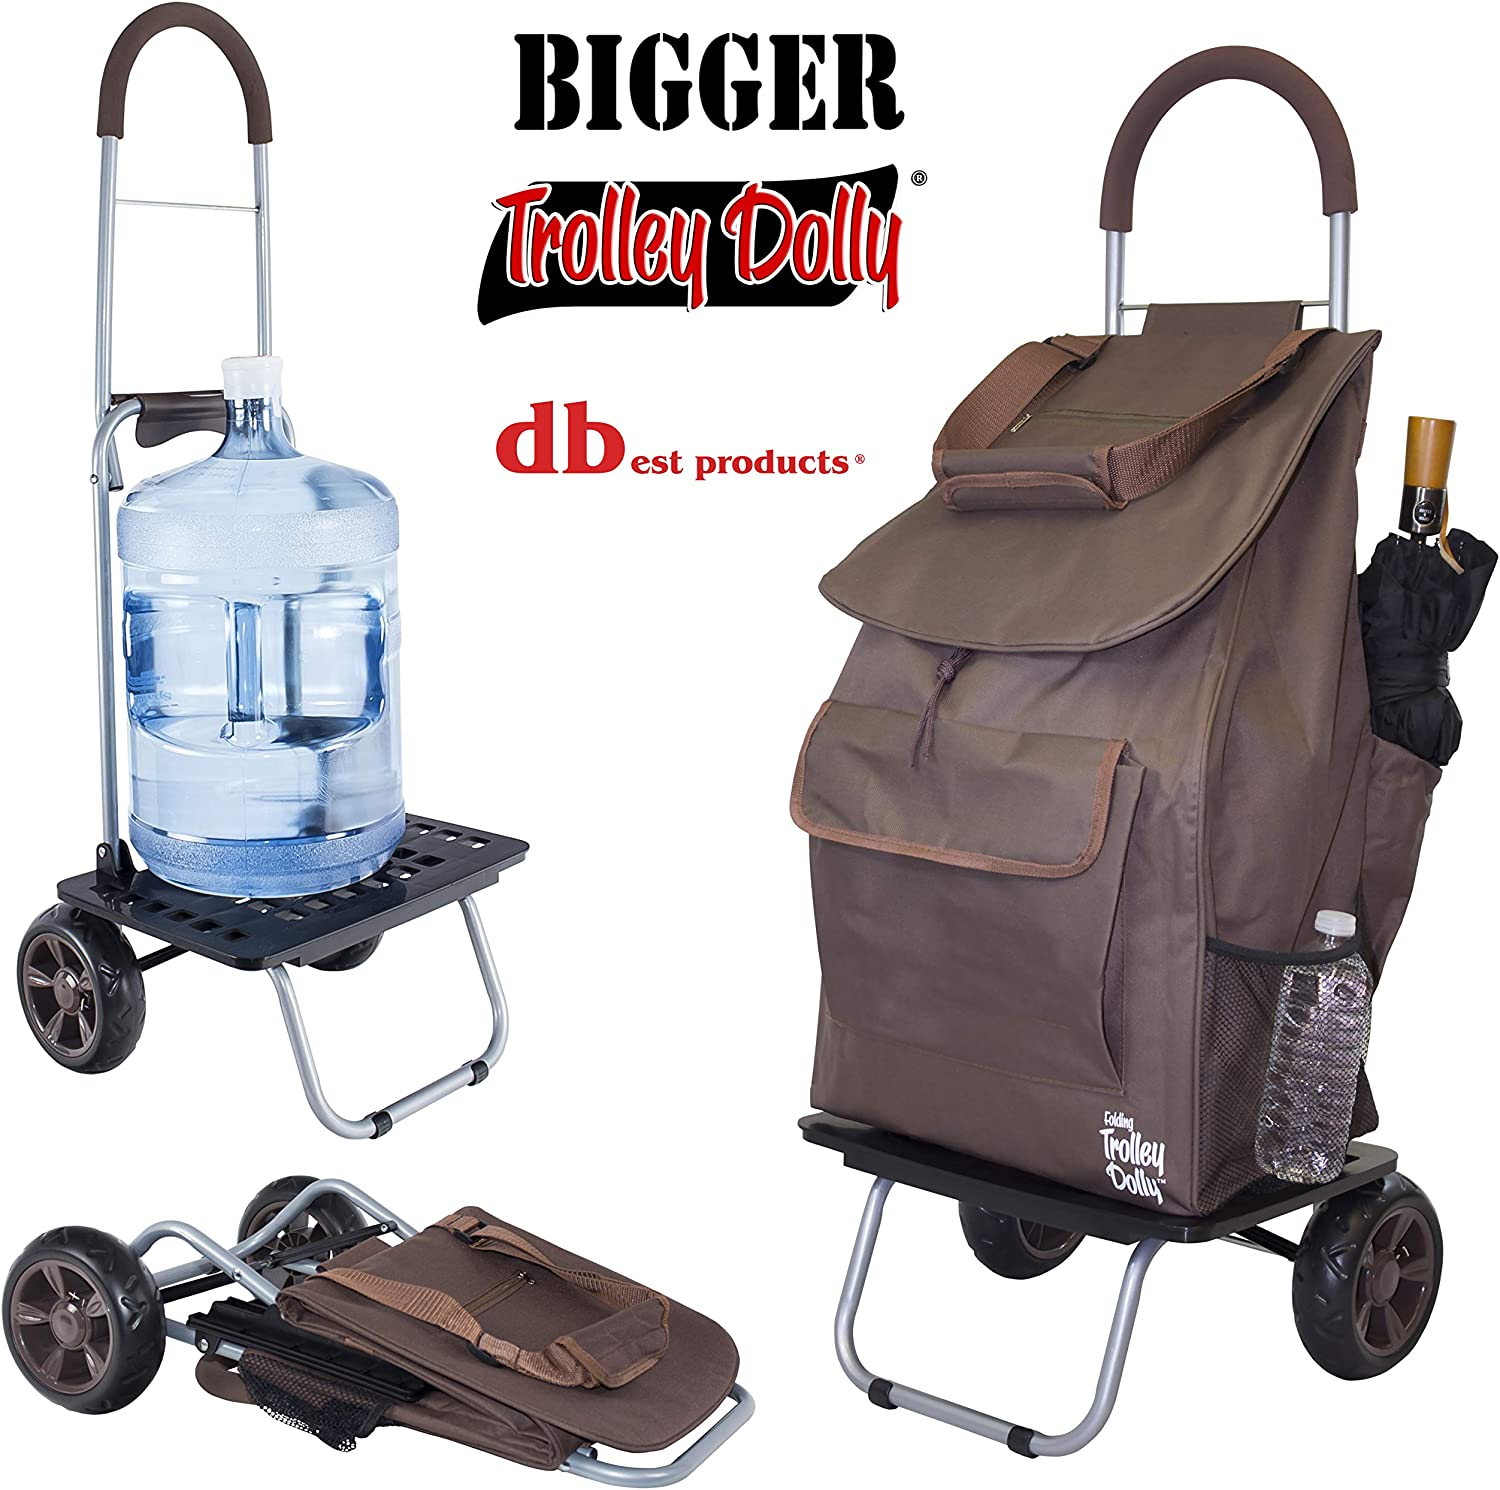 dbest products Bigger Trolley Dolly, Brown Shopping Grocery Foldable Cart: Home & Kitchen